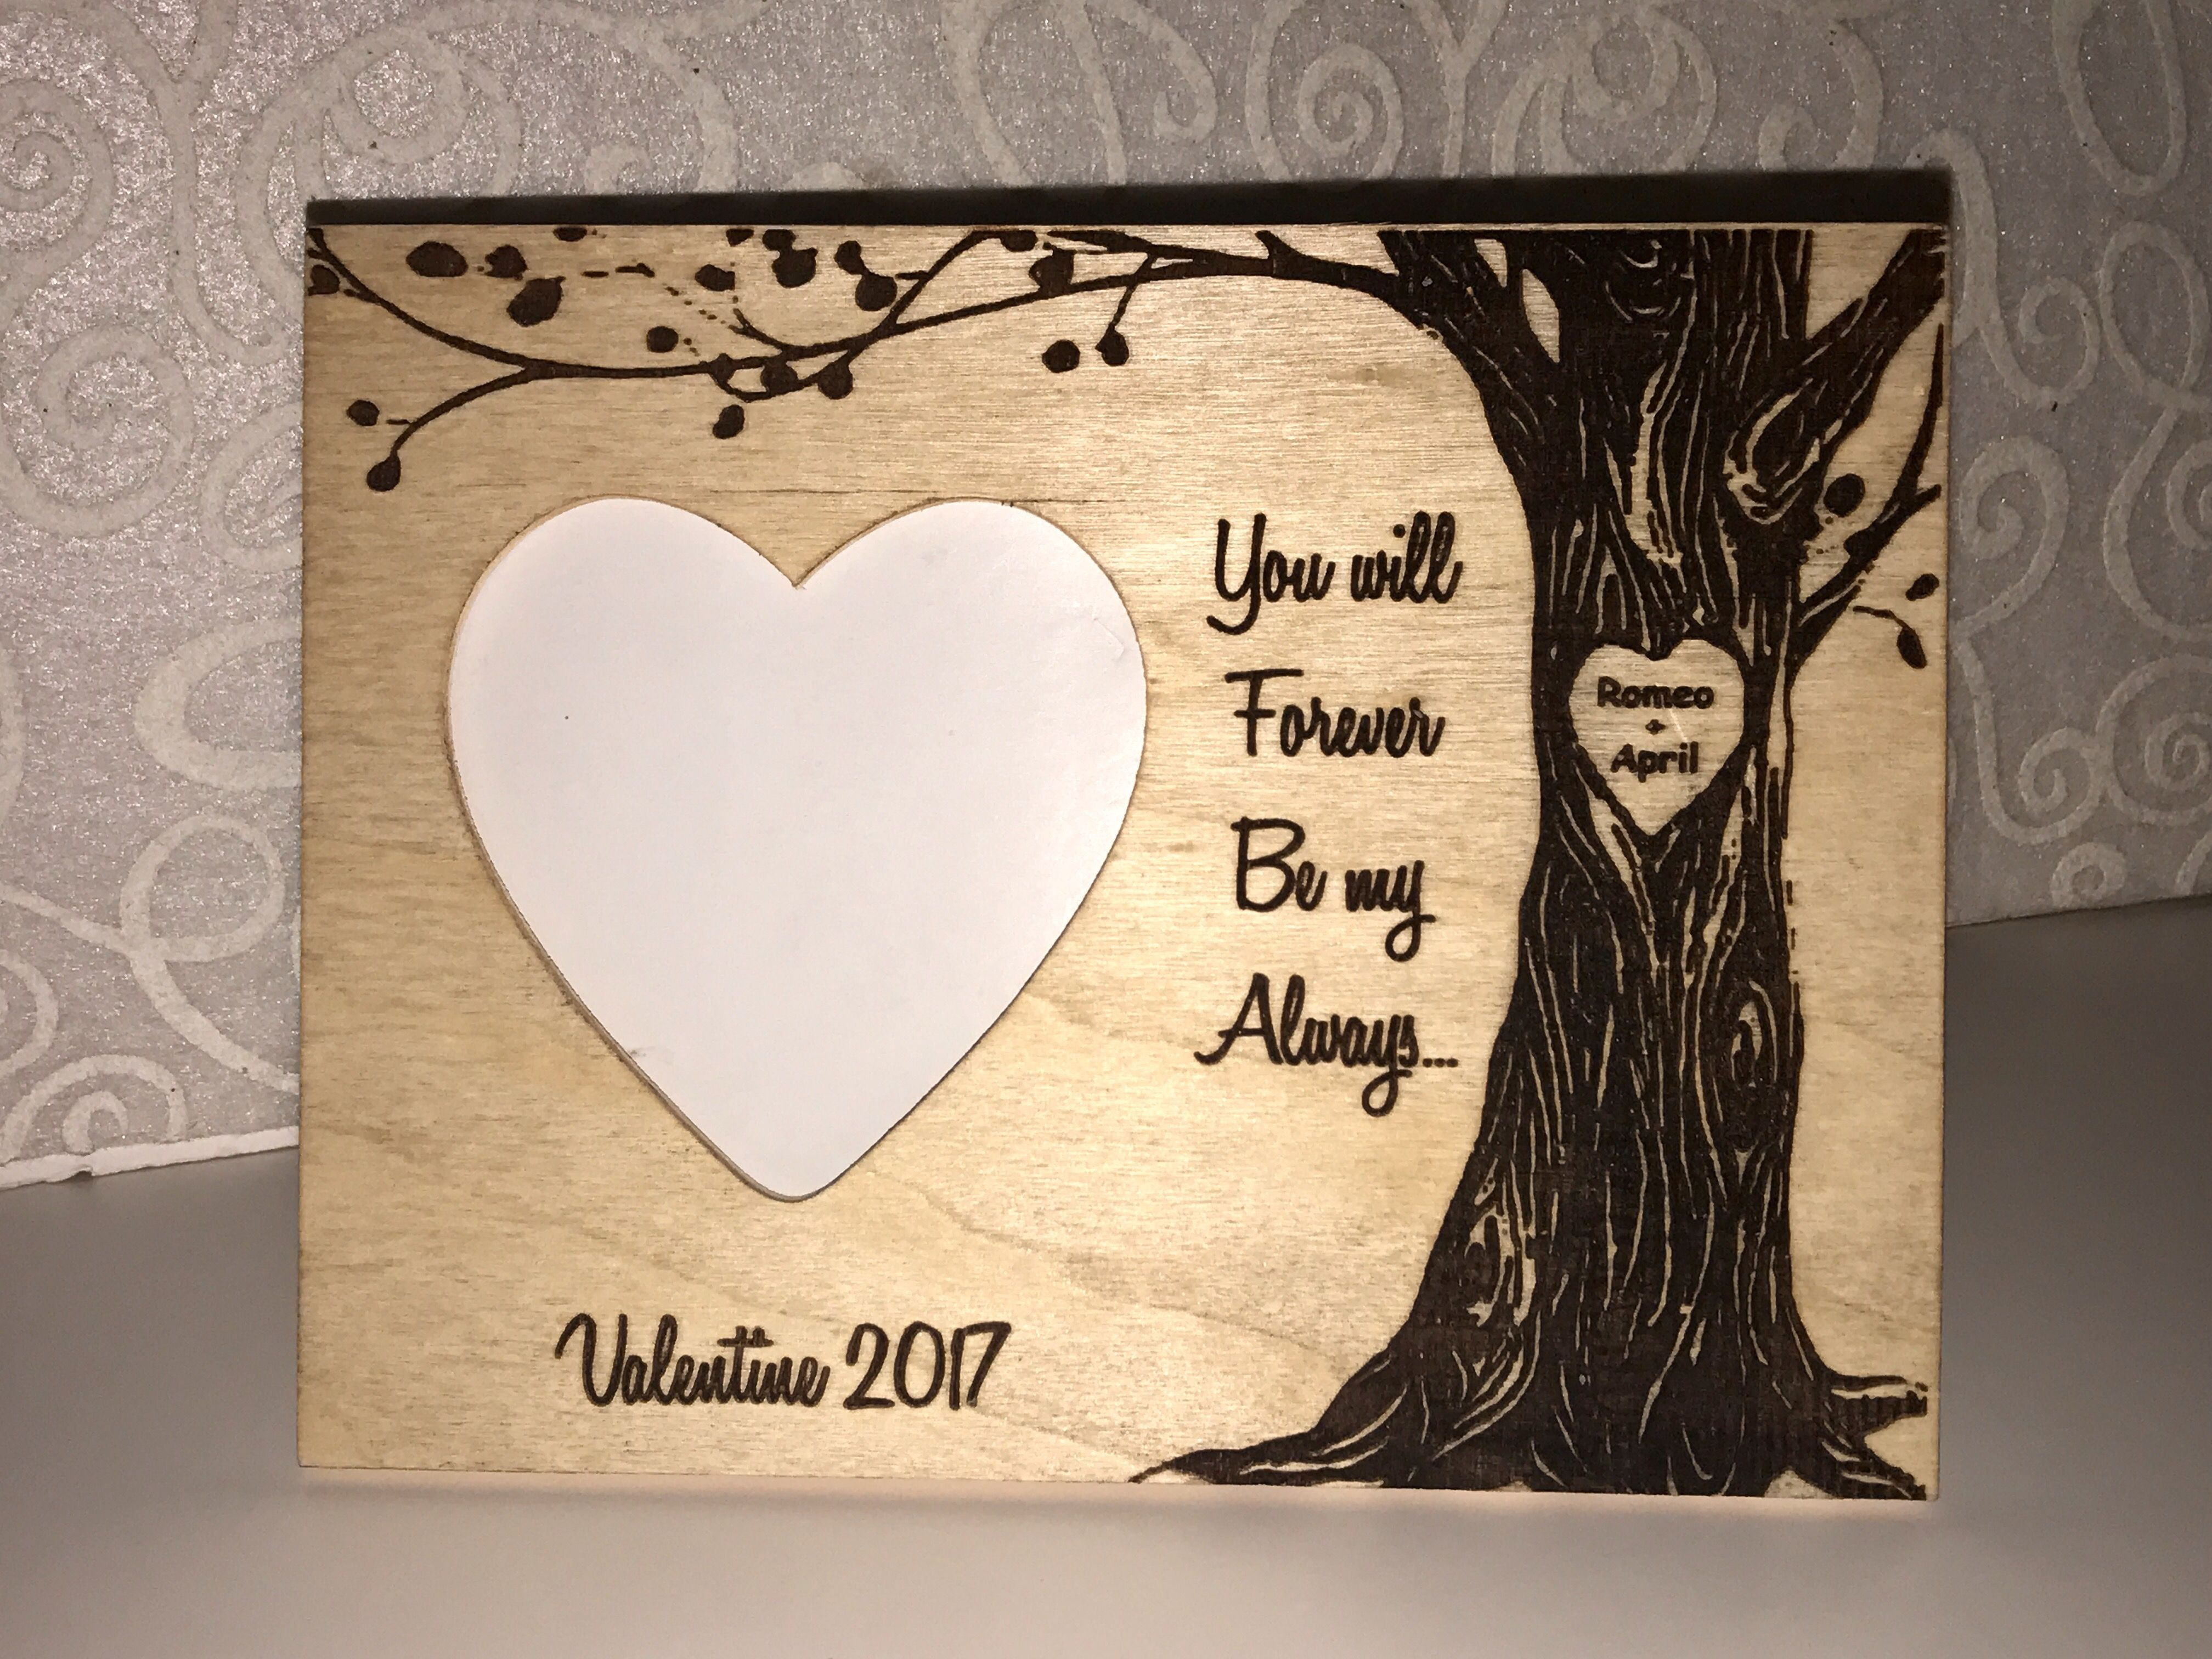 Personalized couples frame valentine gift with your names you will forever be my always personalized frame with couples names engraved in the tree jeuxipadfo Image collections